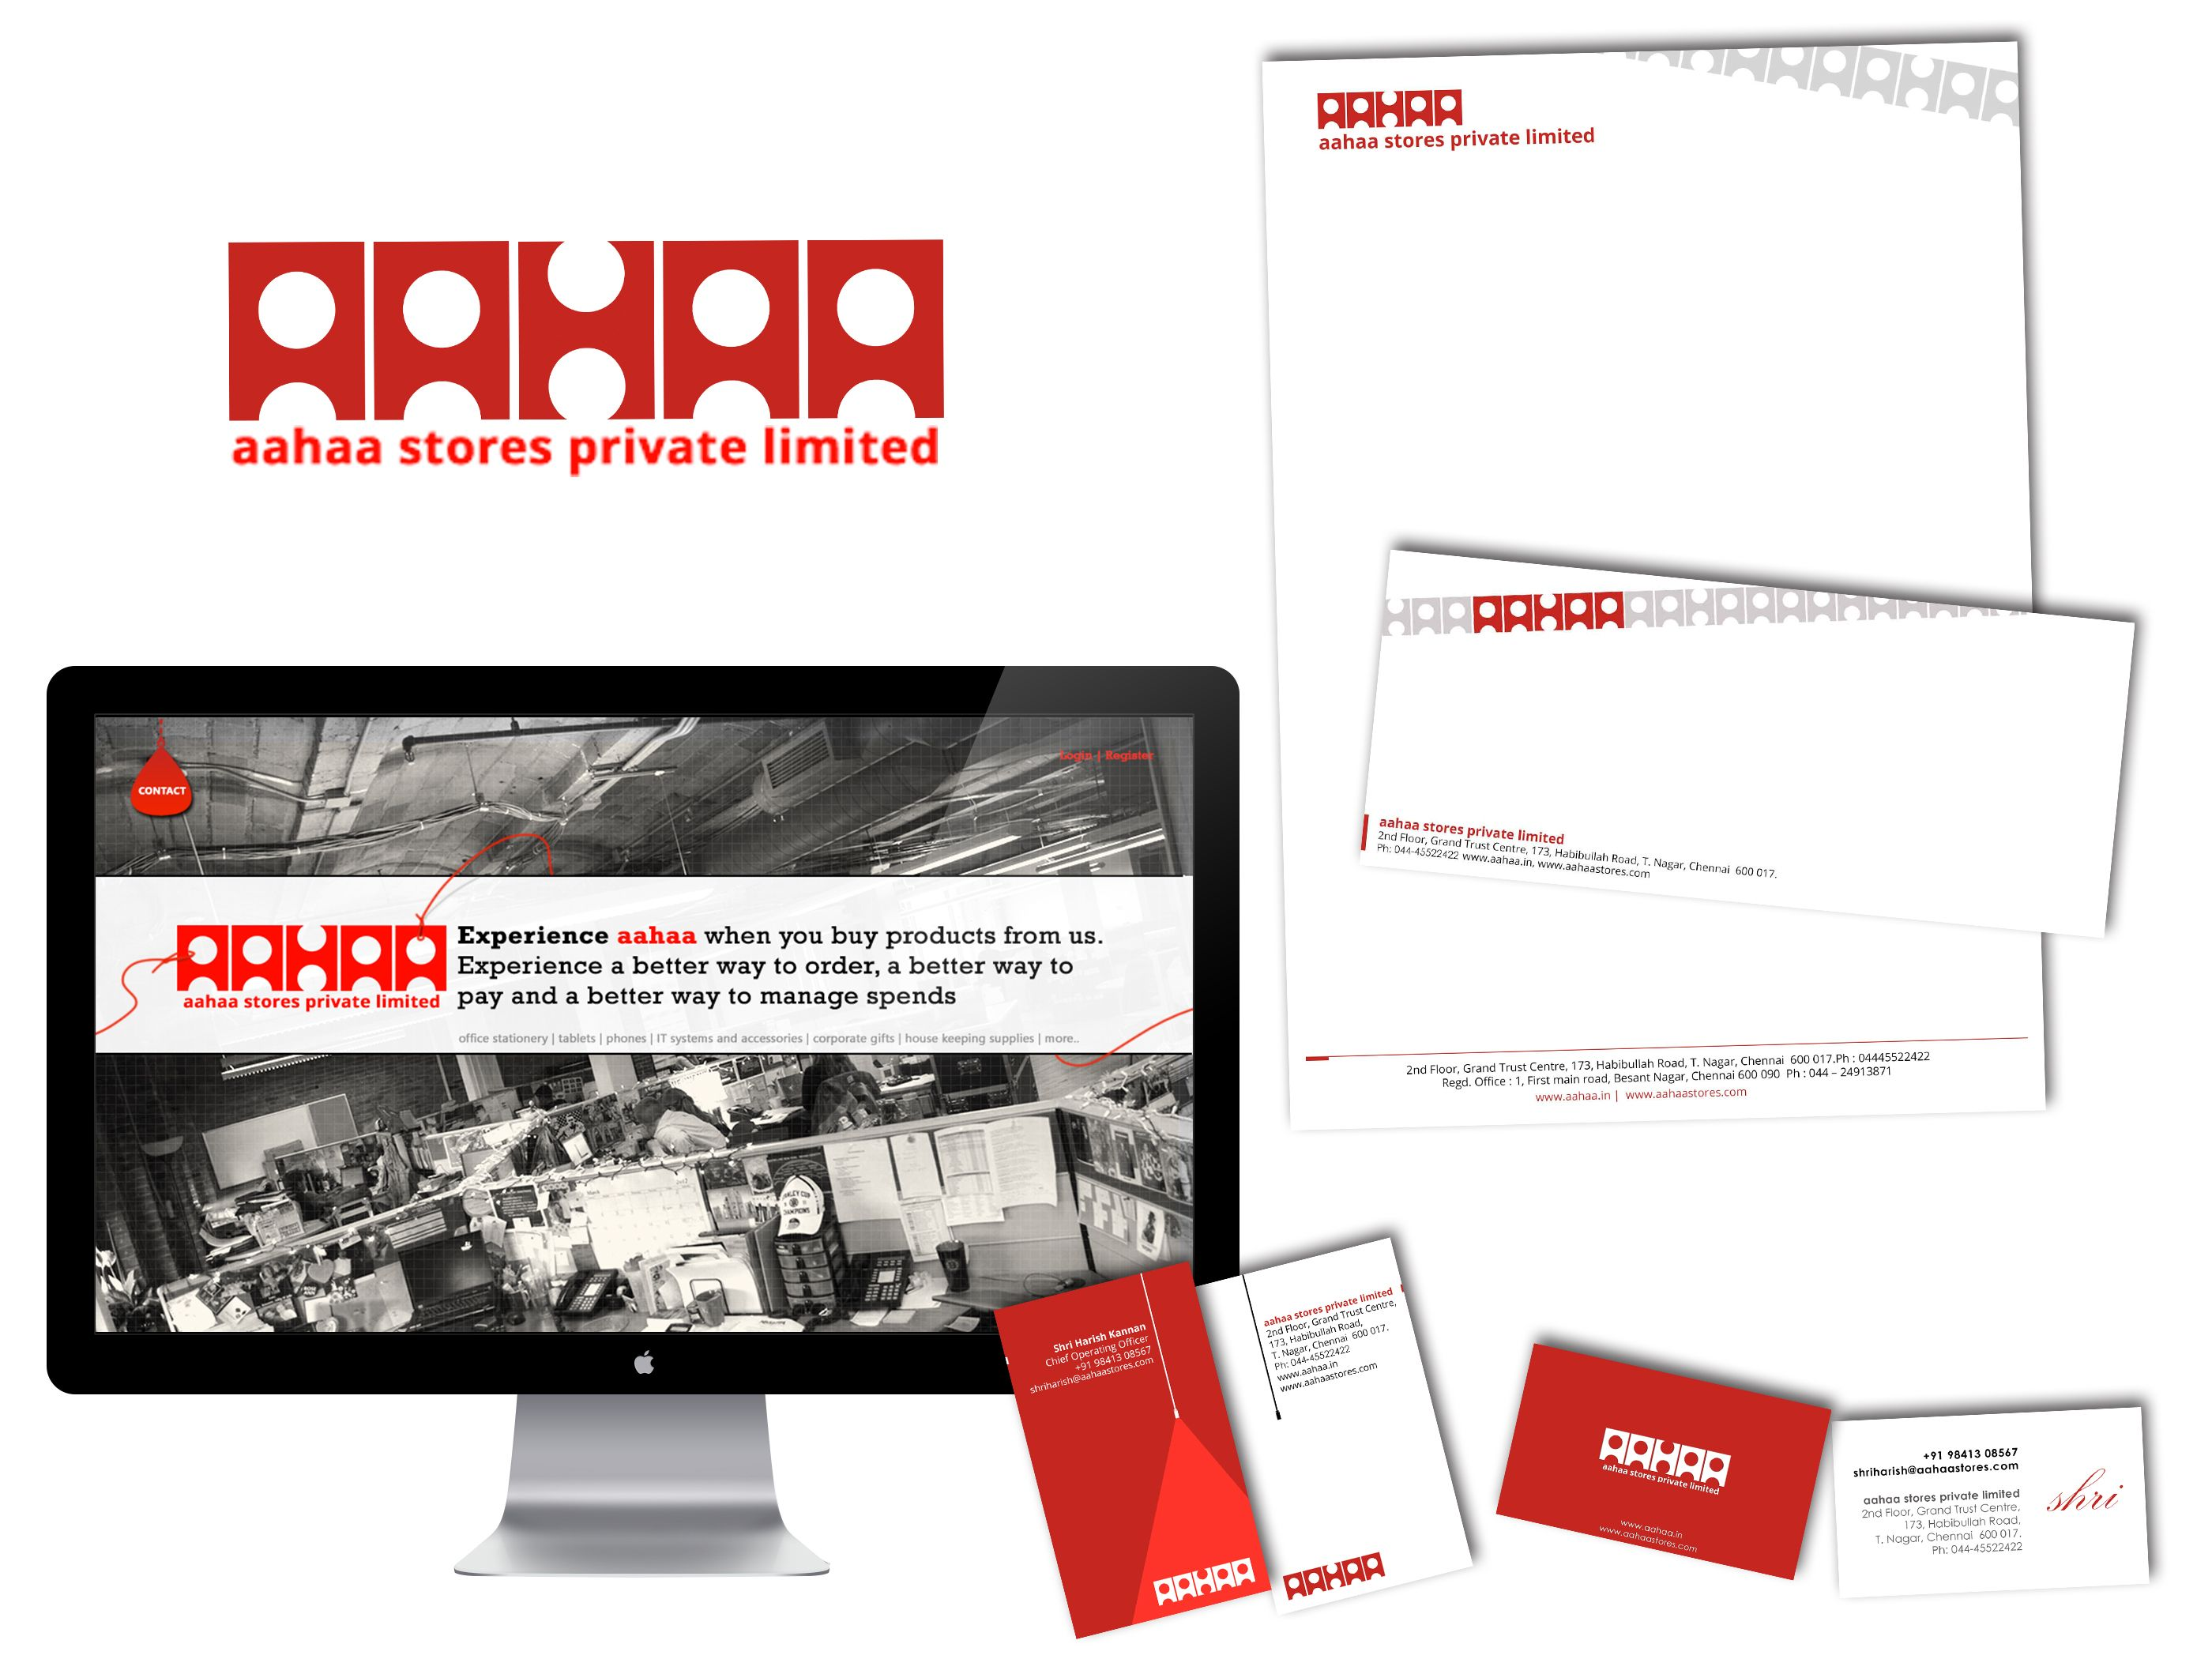 Webdefy is glad to present the Branding portfolio for Aahaa